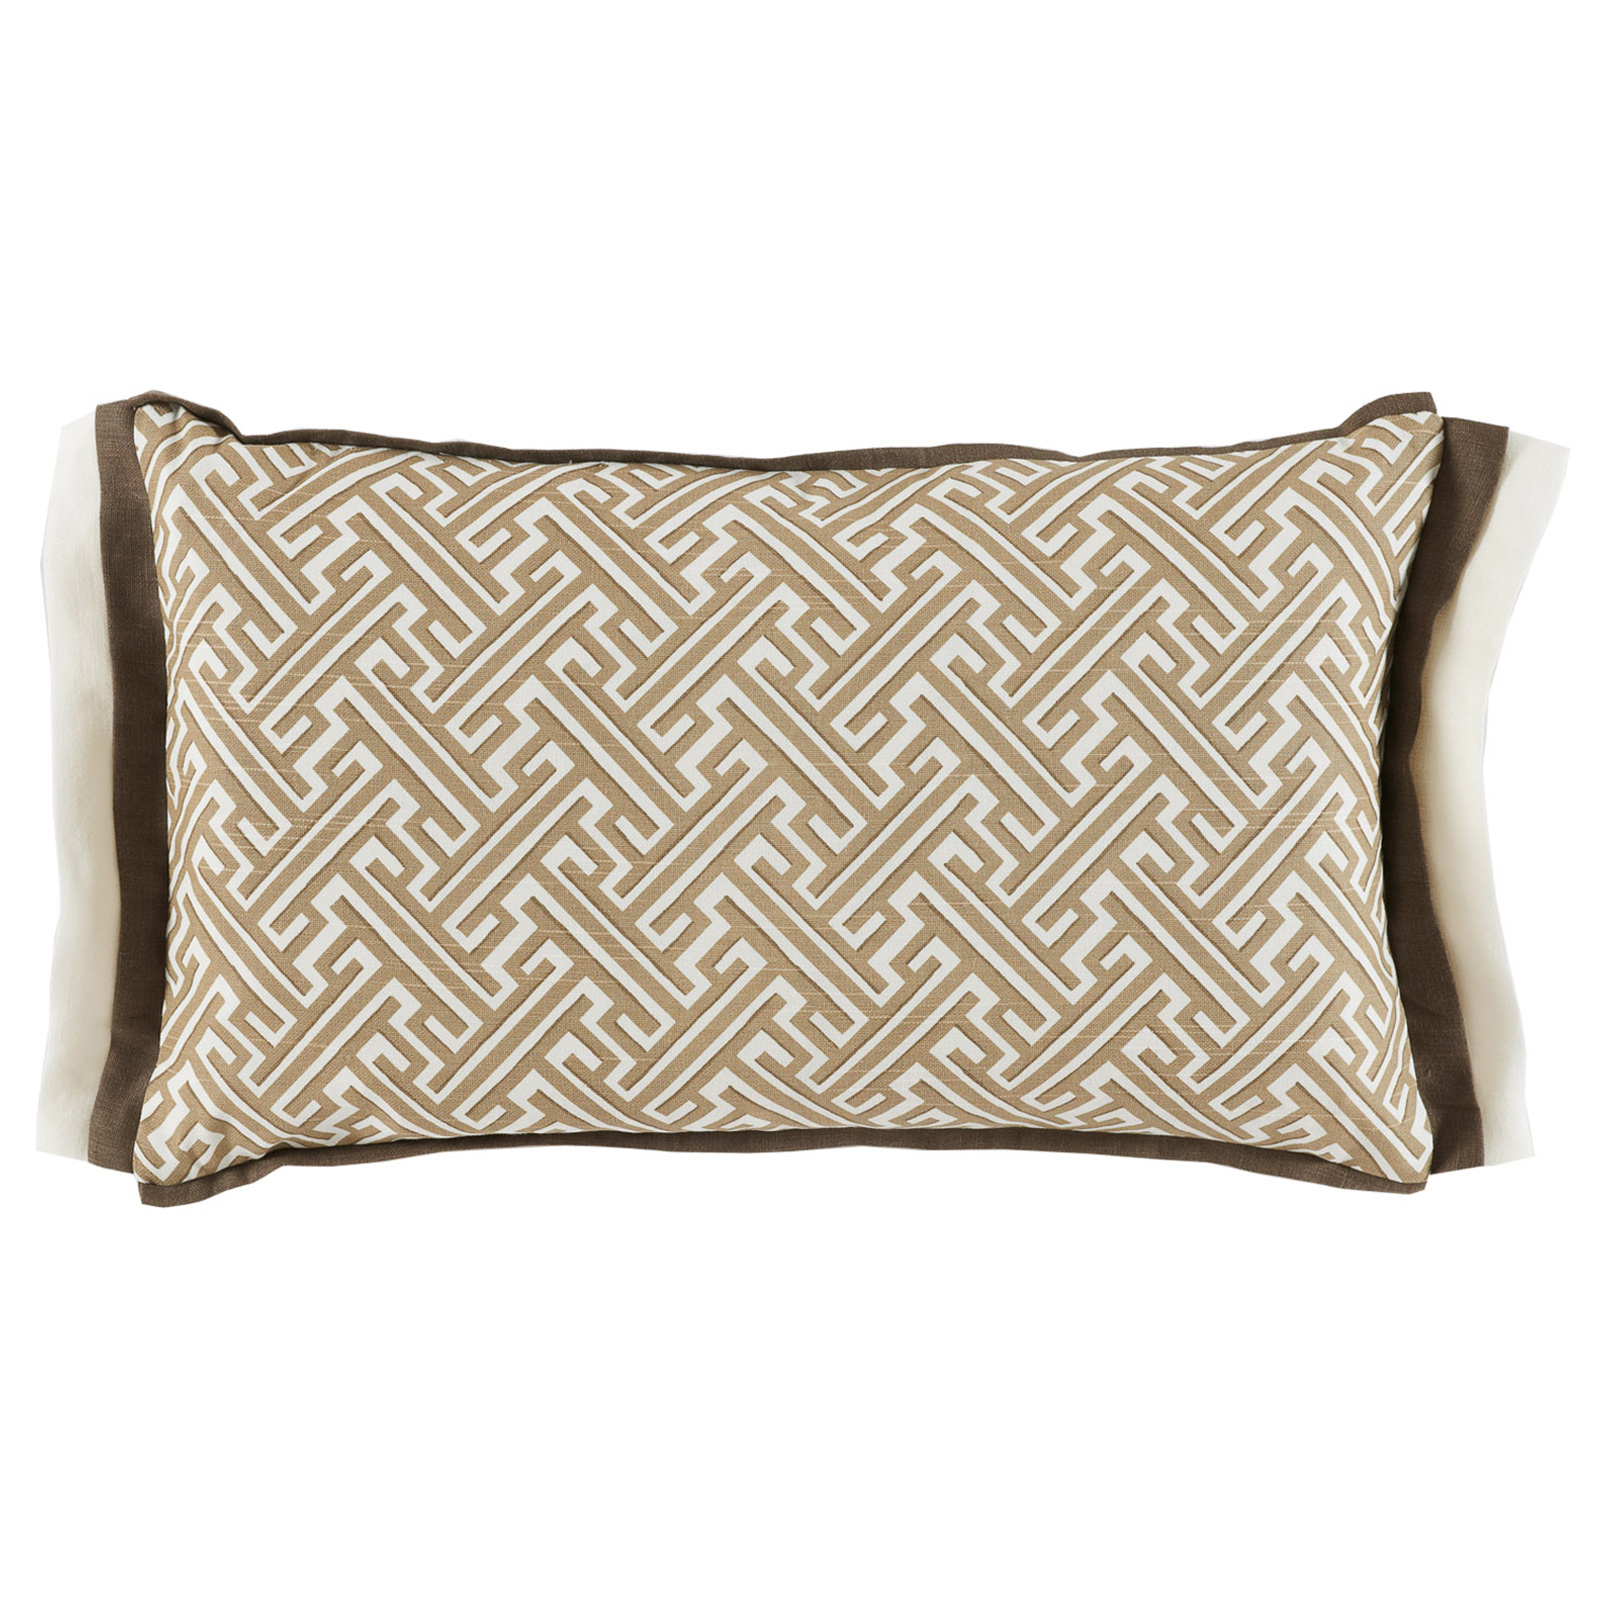 Bluth Modern Classic Graphic Beige Pattern Pillow - 13x22